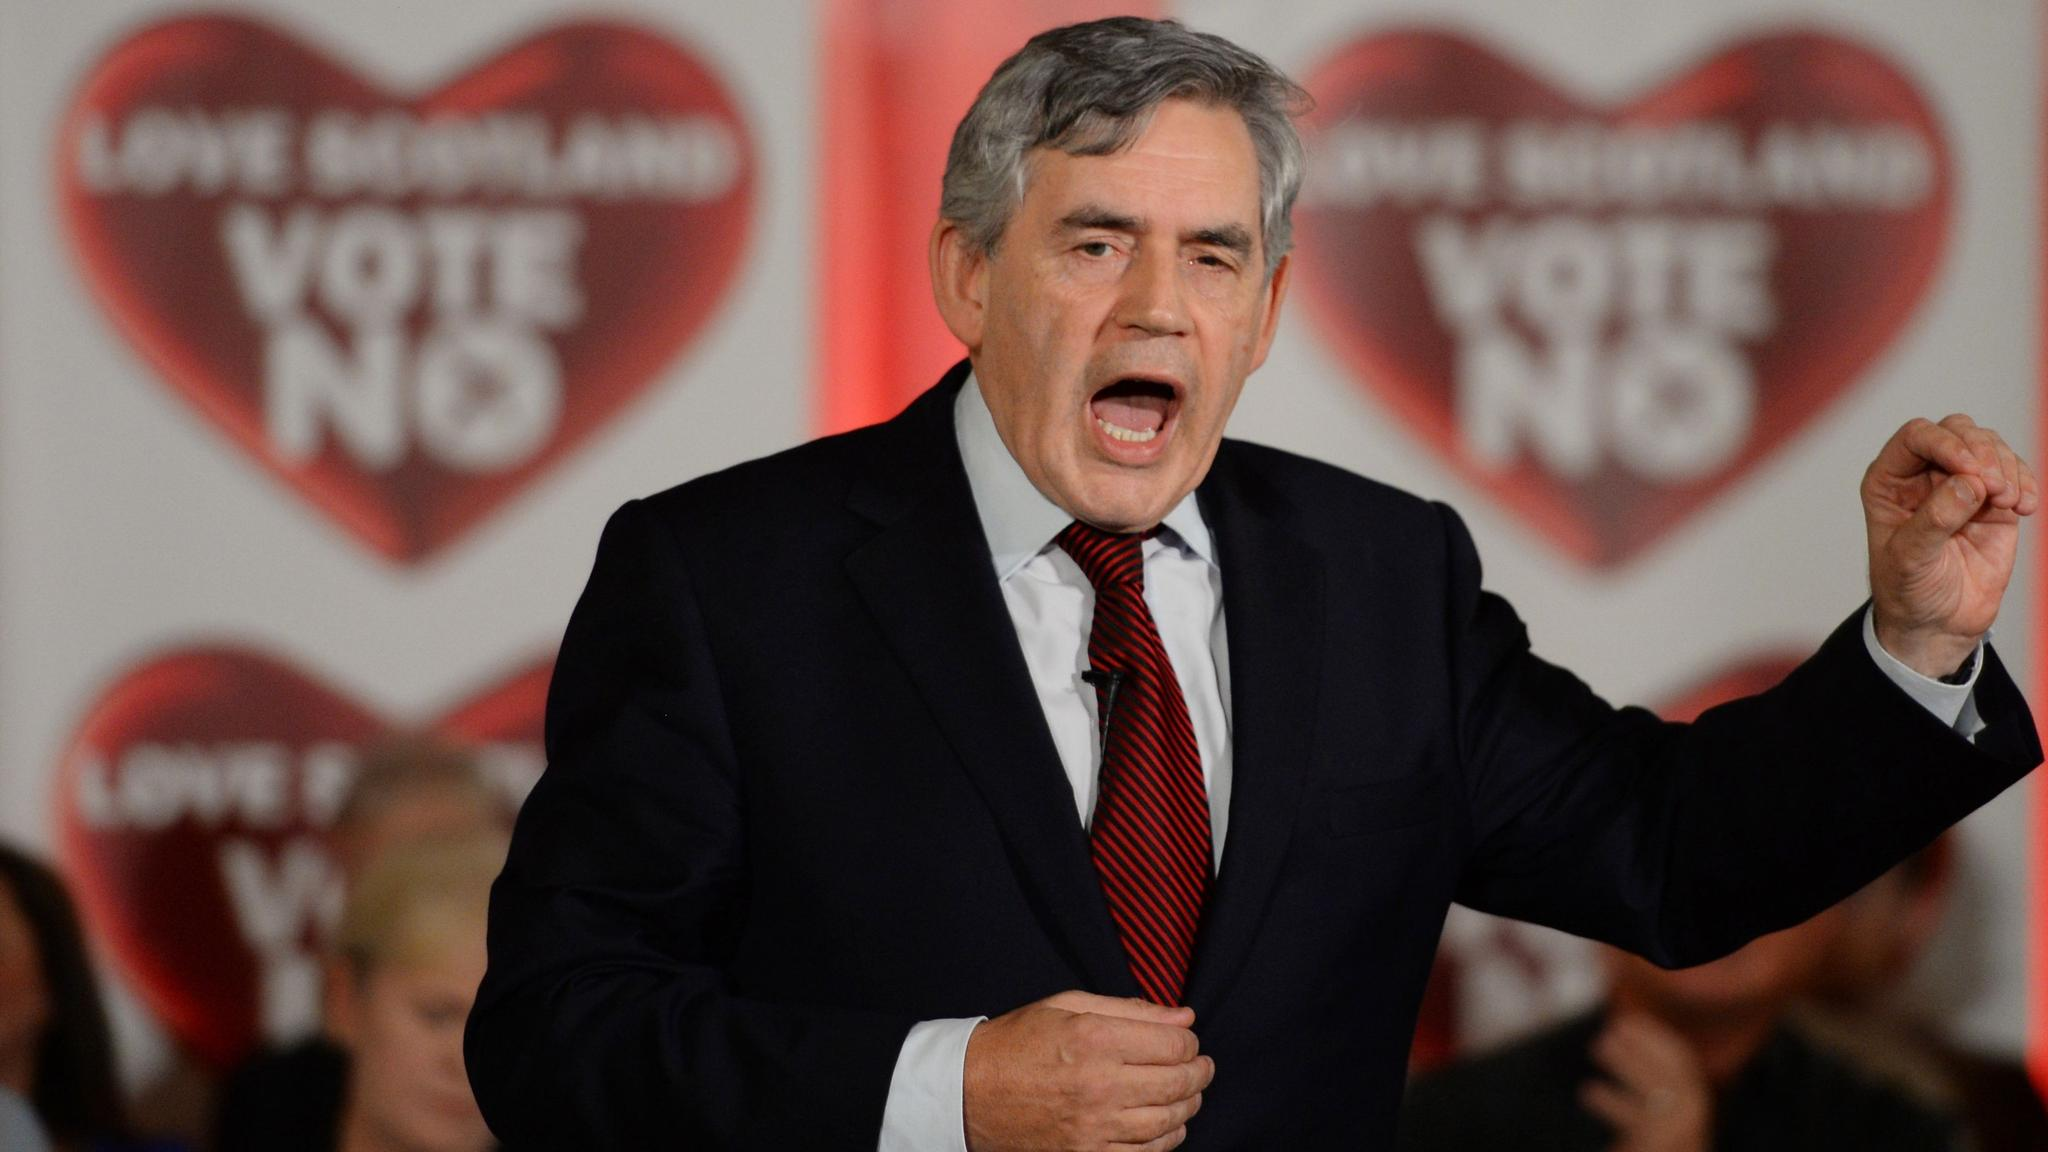 Gordon Brown makes final push in No campaign